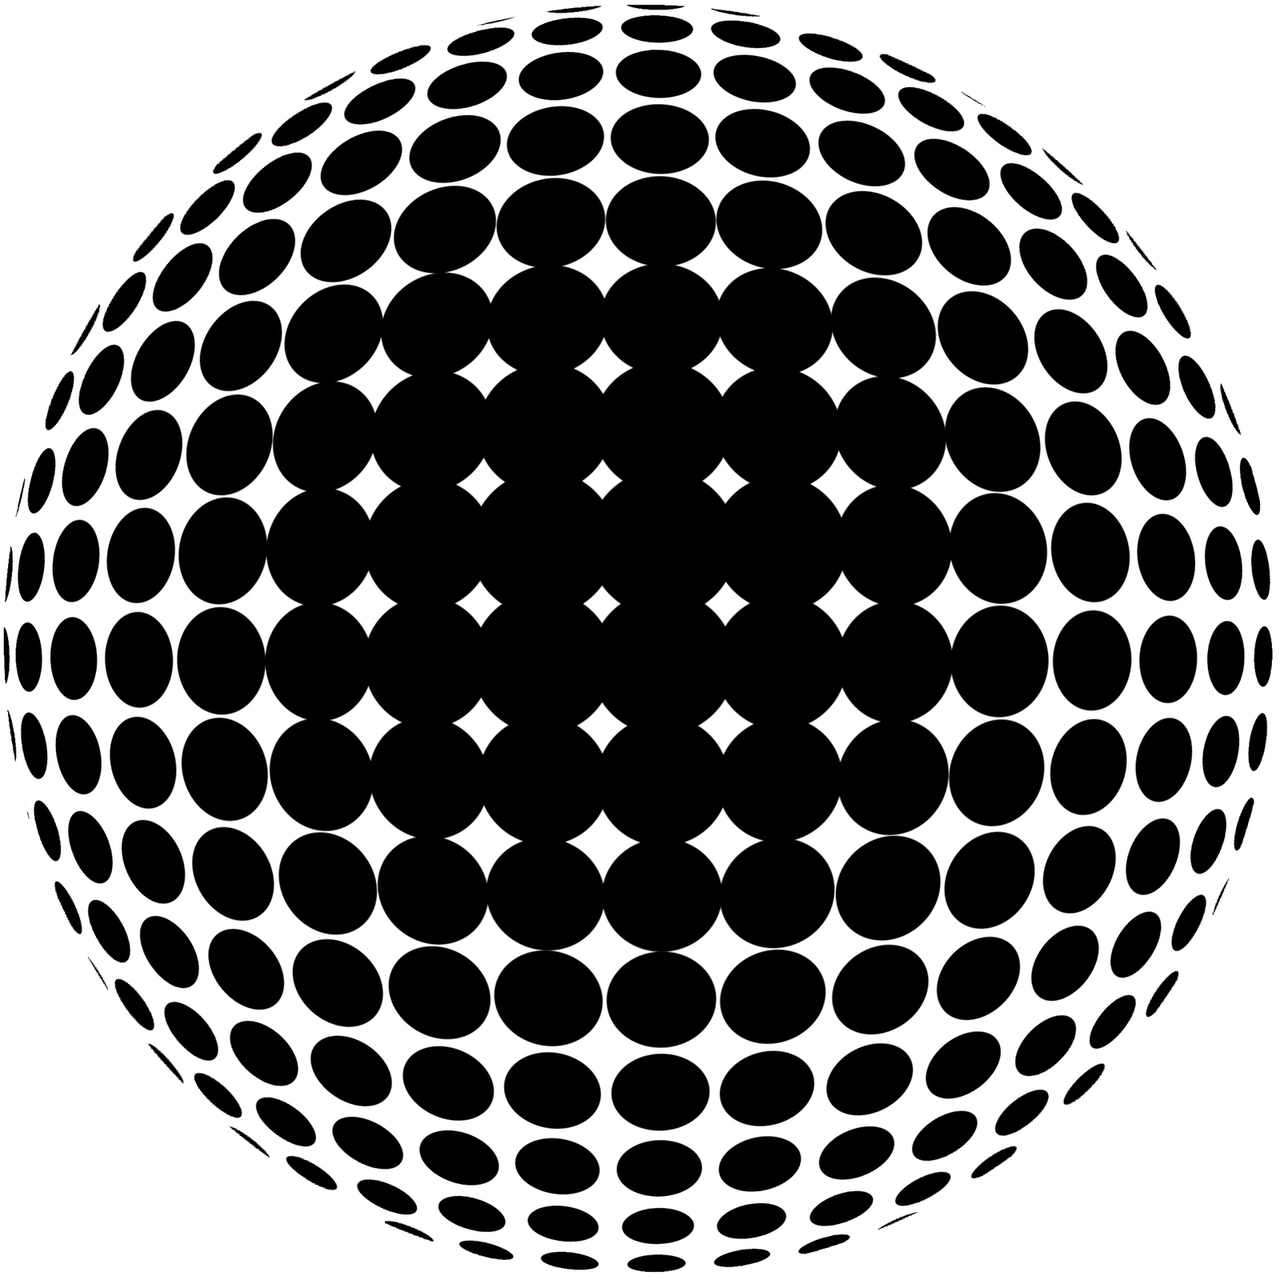 spherized-dots-cybrary